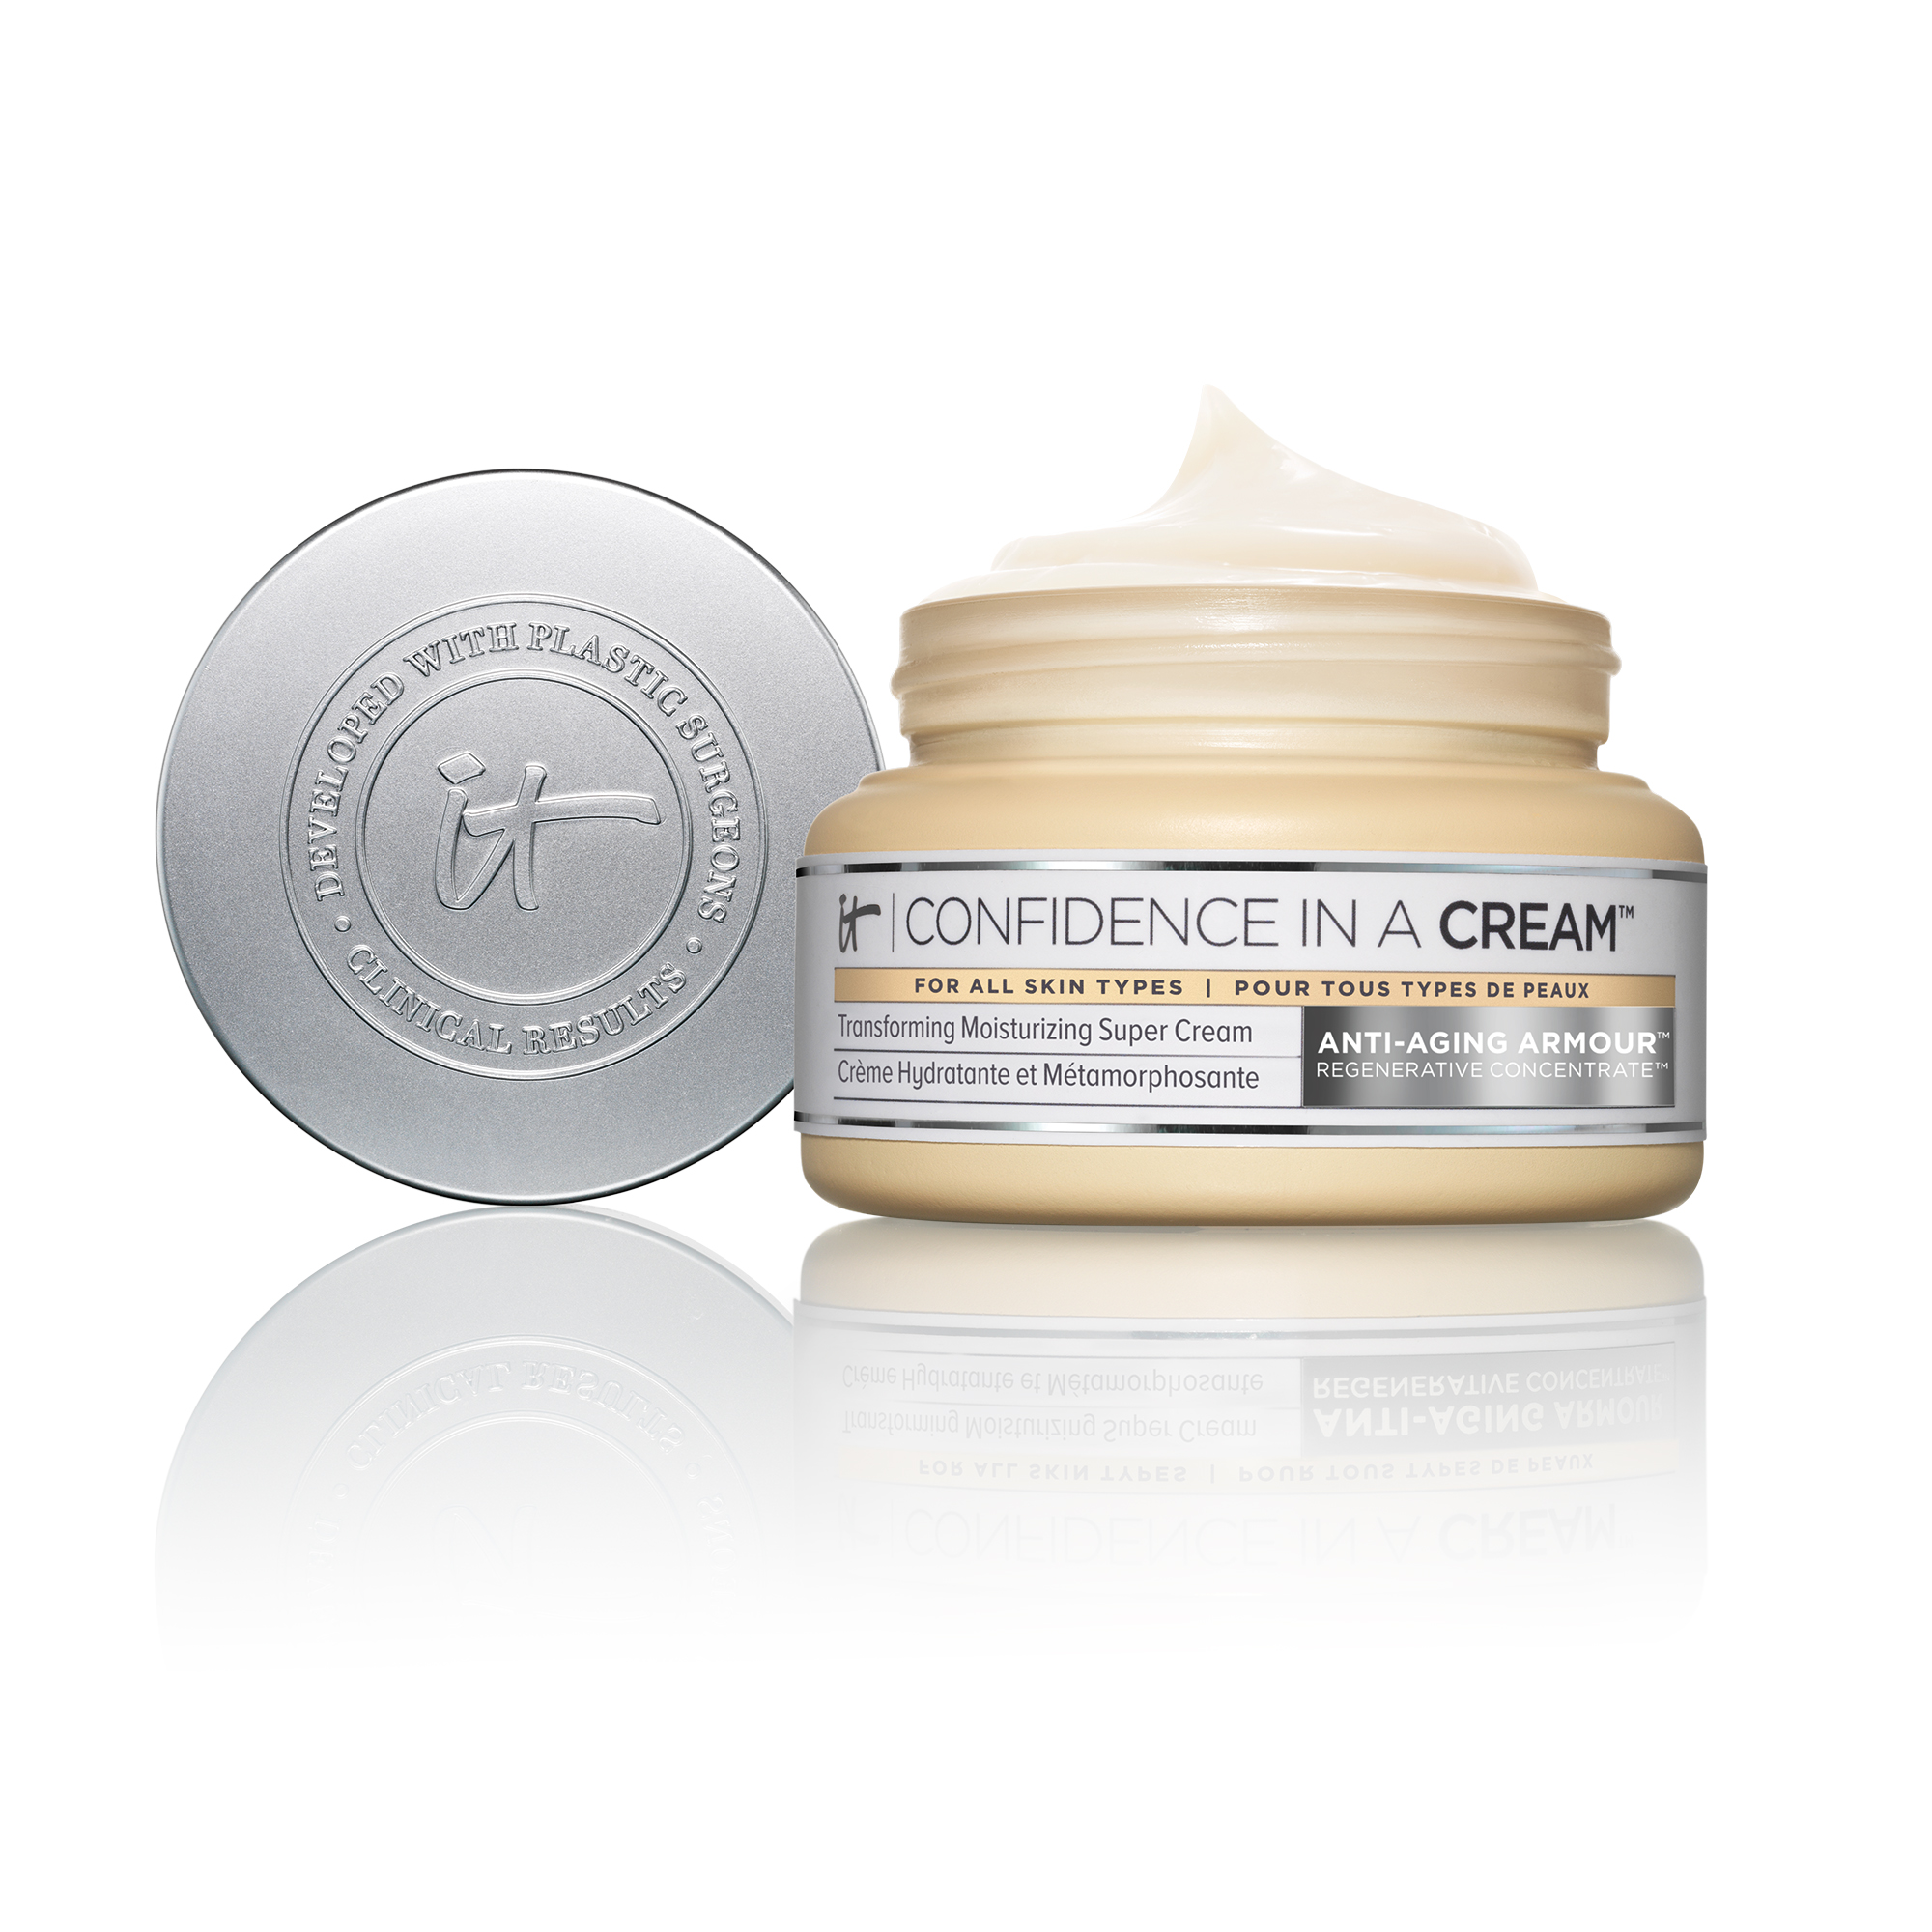 it-cosmetics-confidence-in-a-cream-review.jpg